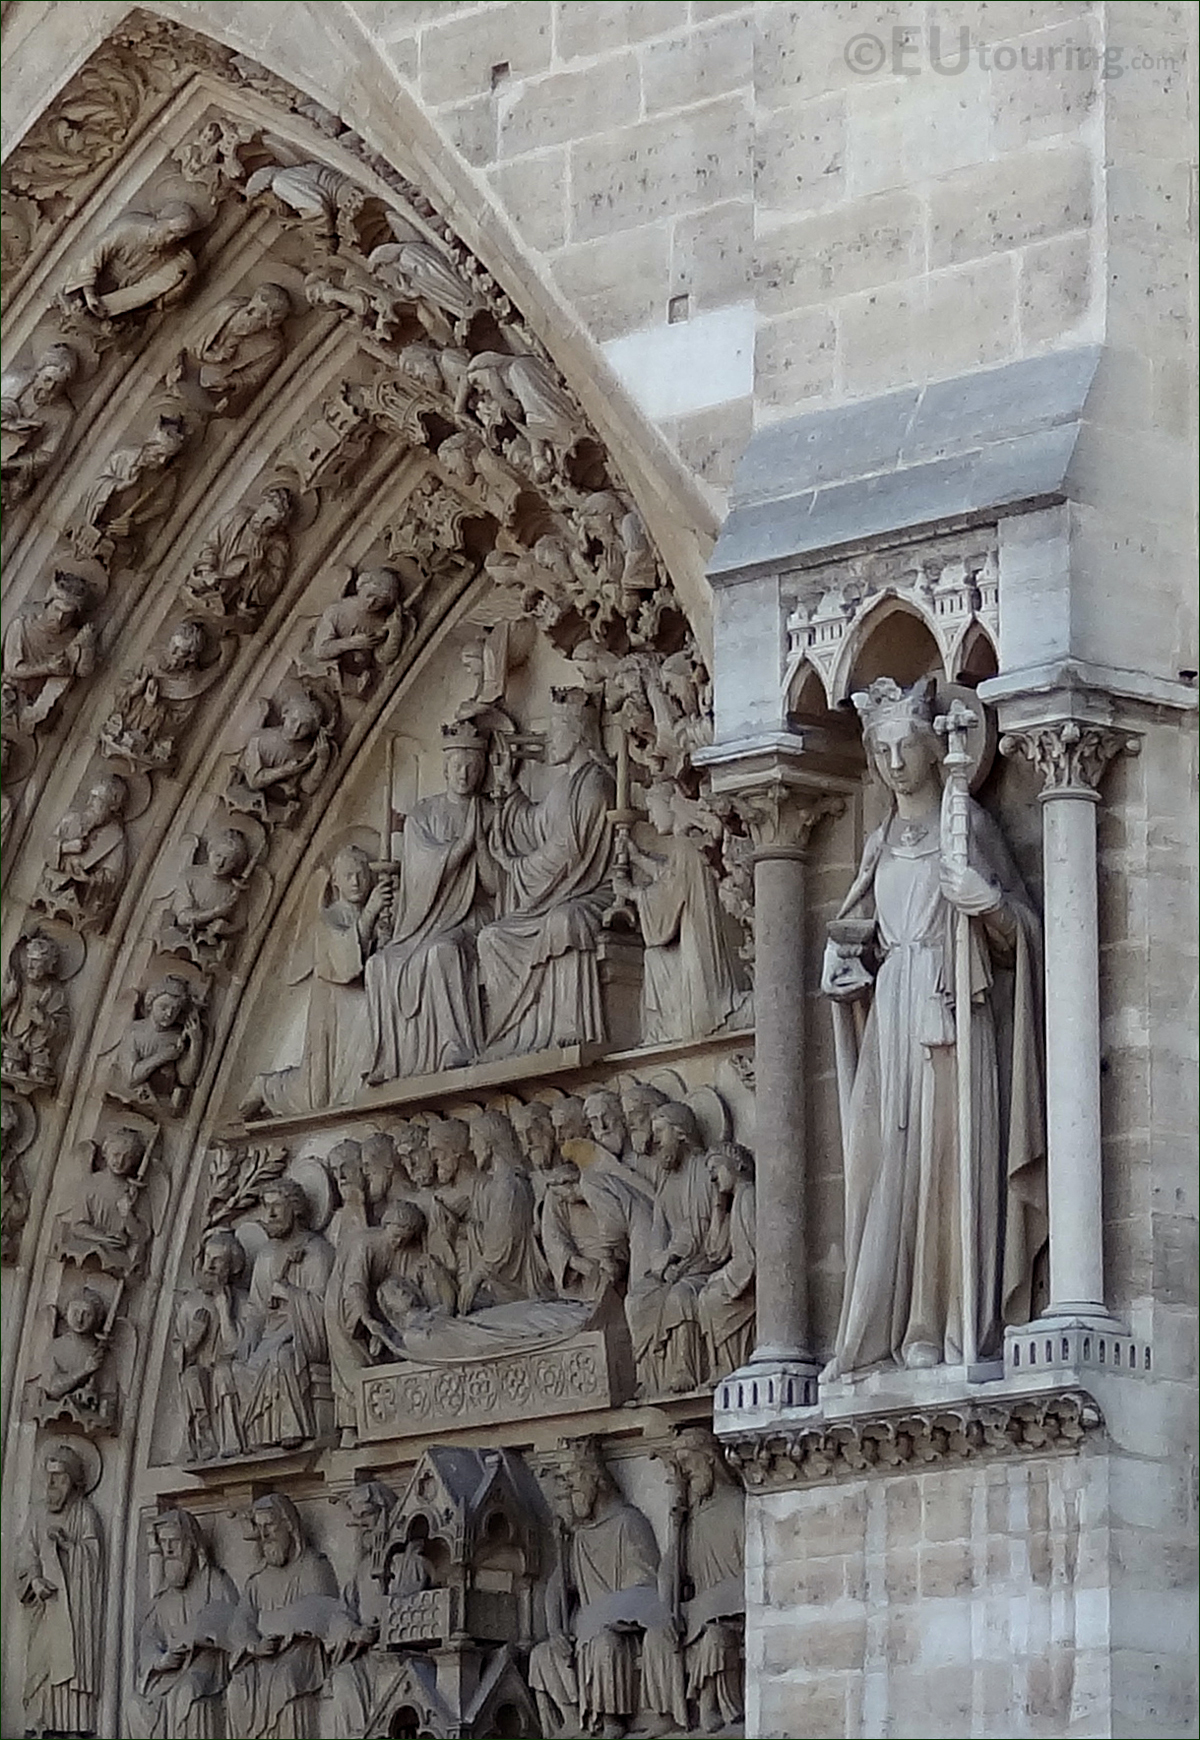 Overlooked details on the Notre Dame